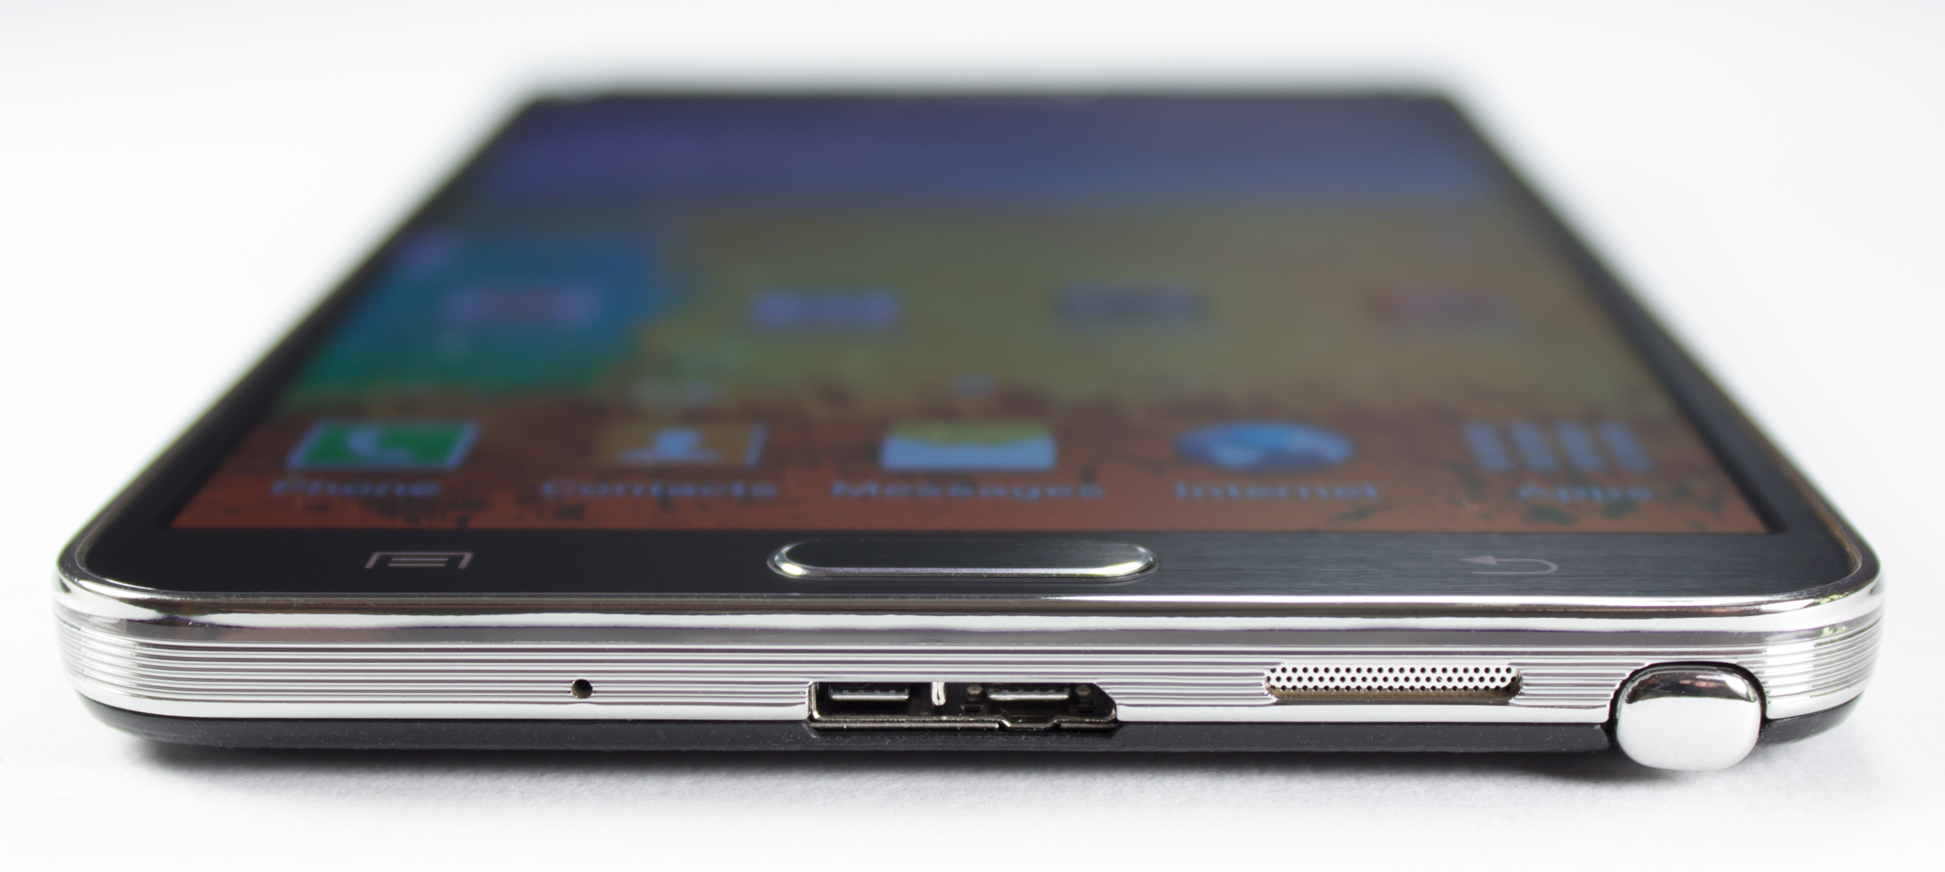 Review: The Galaxy Note 3 is big—and it pulls some benchmark